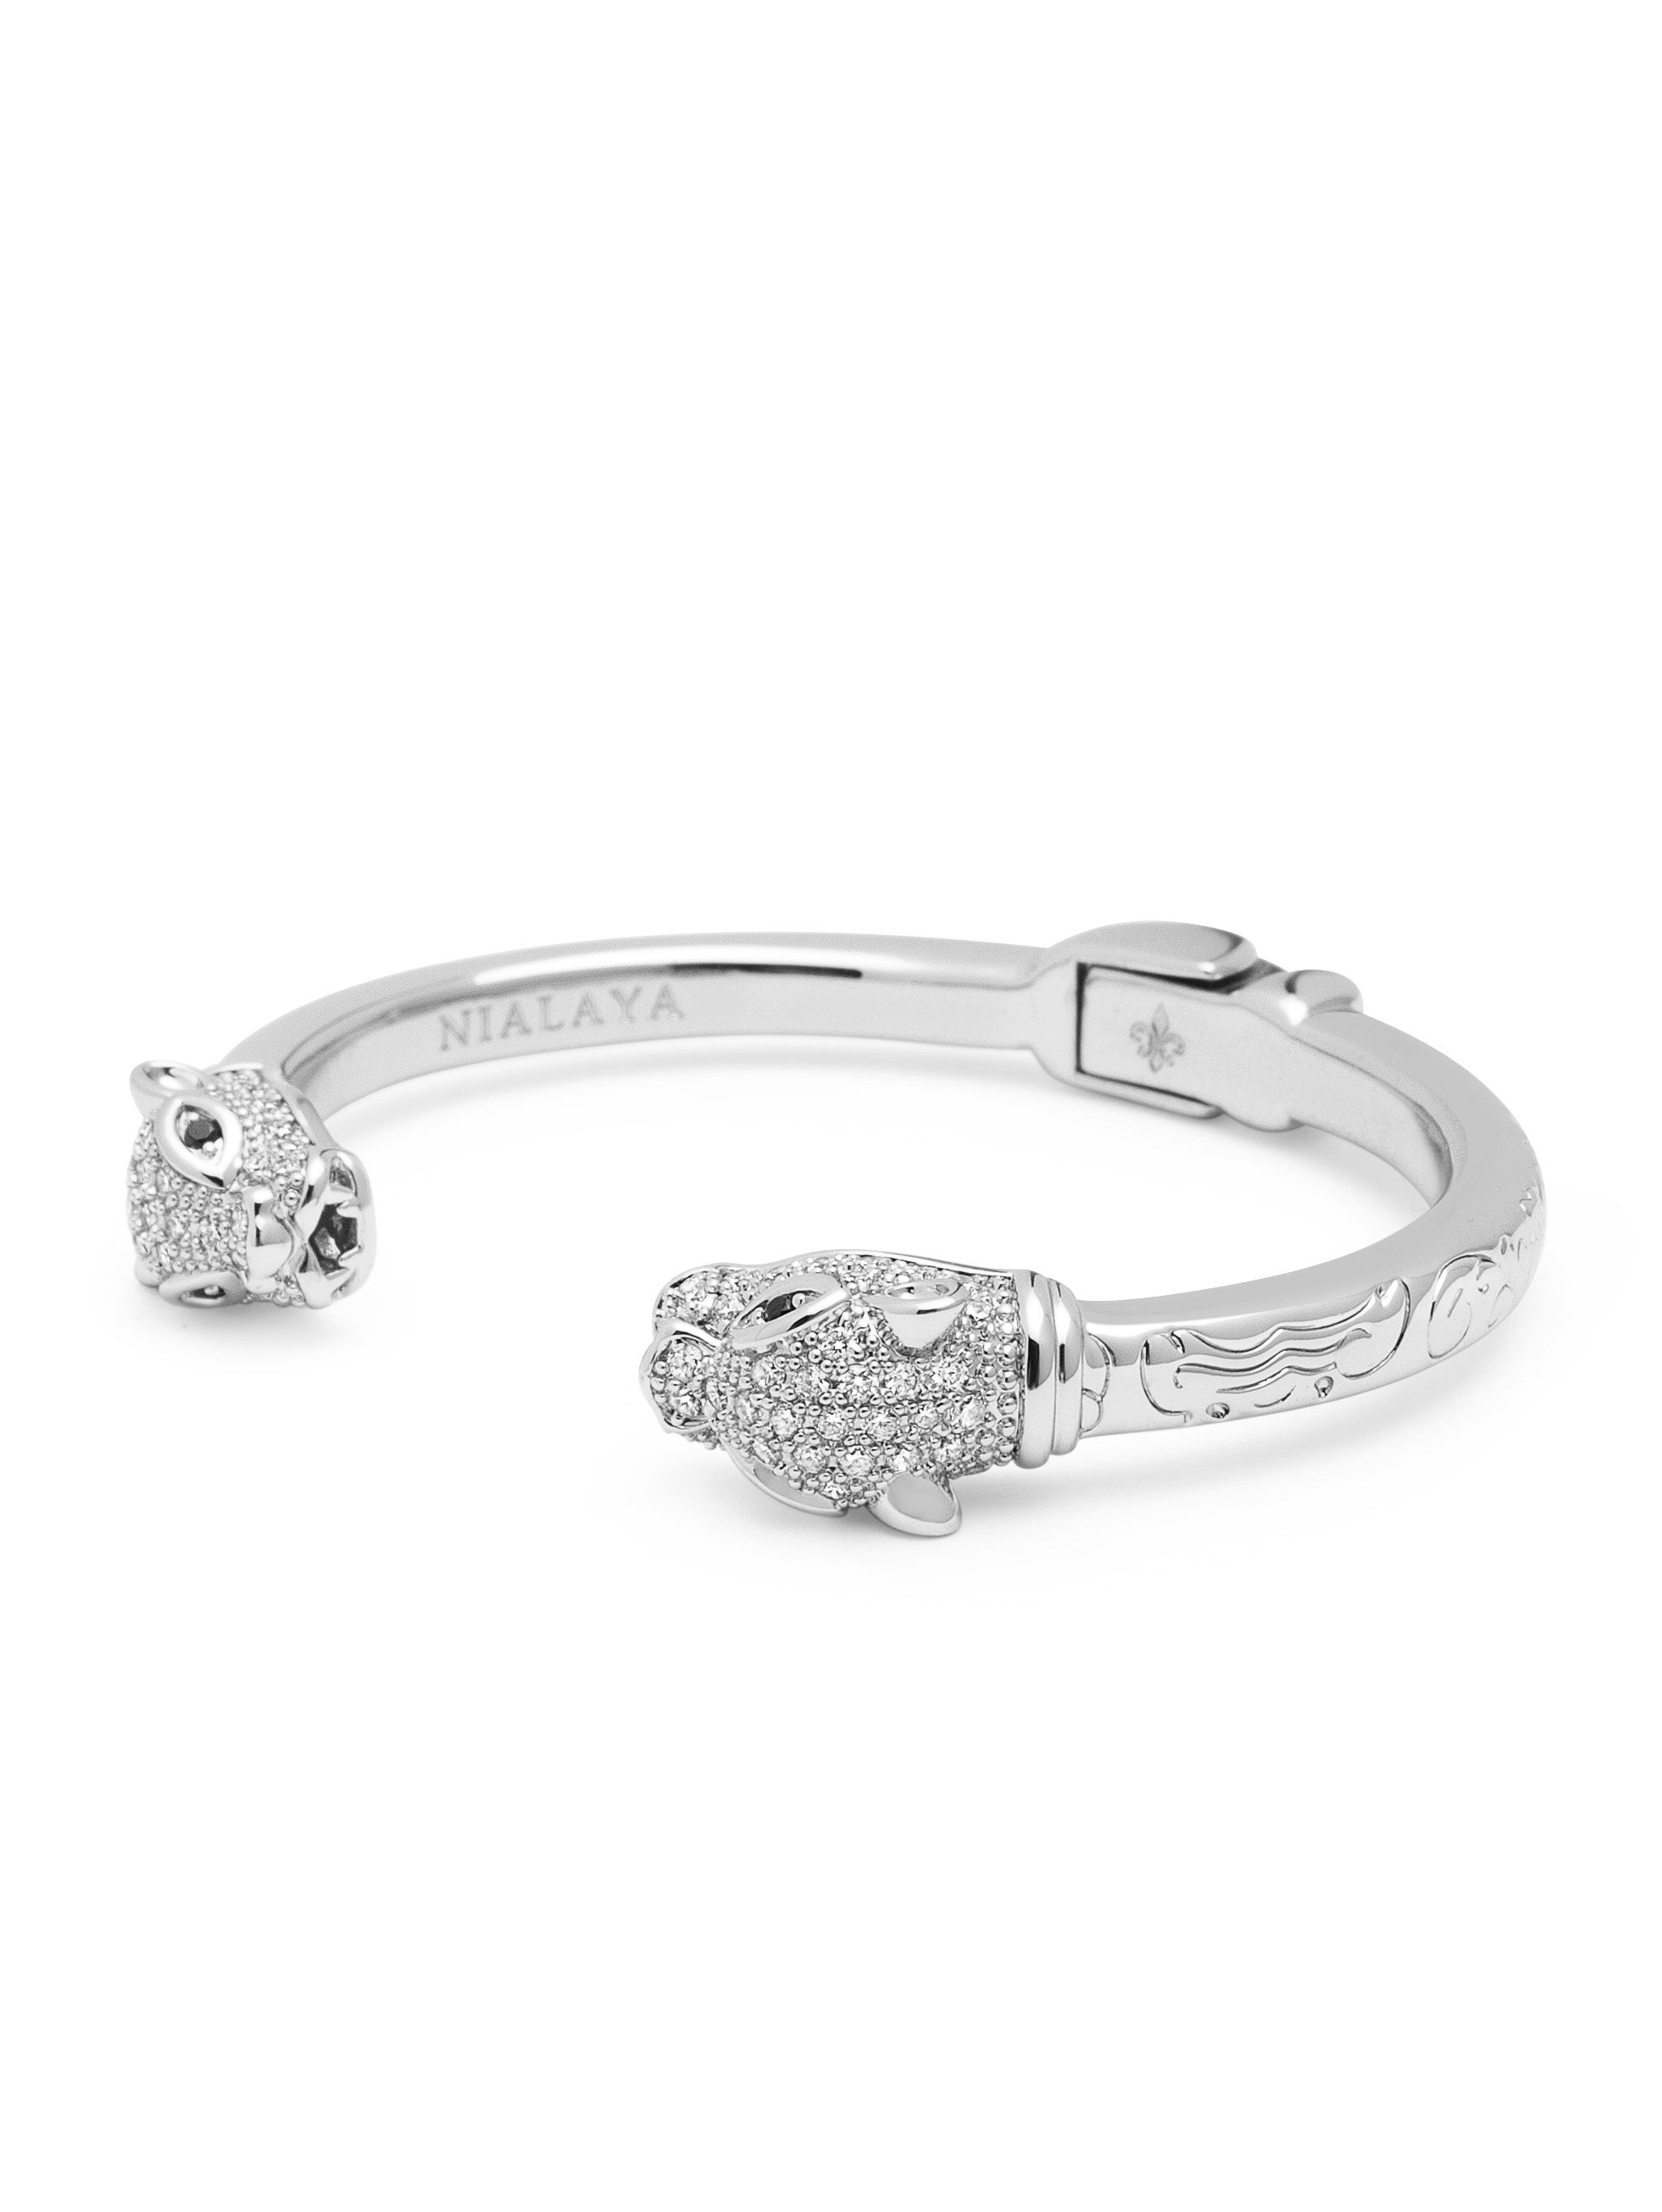 Women's CZ Panther Bangle in Silver